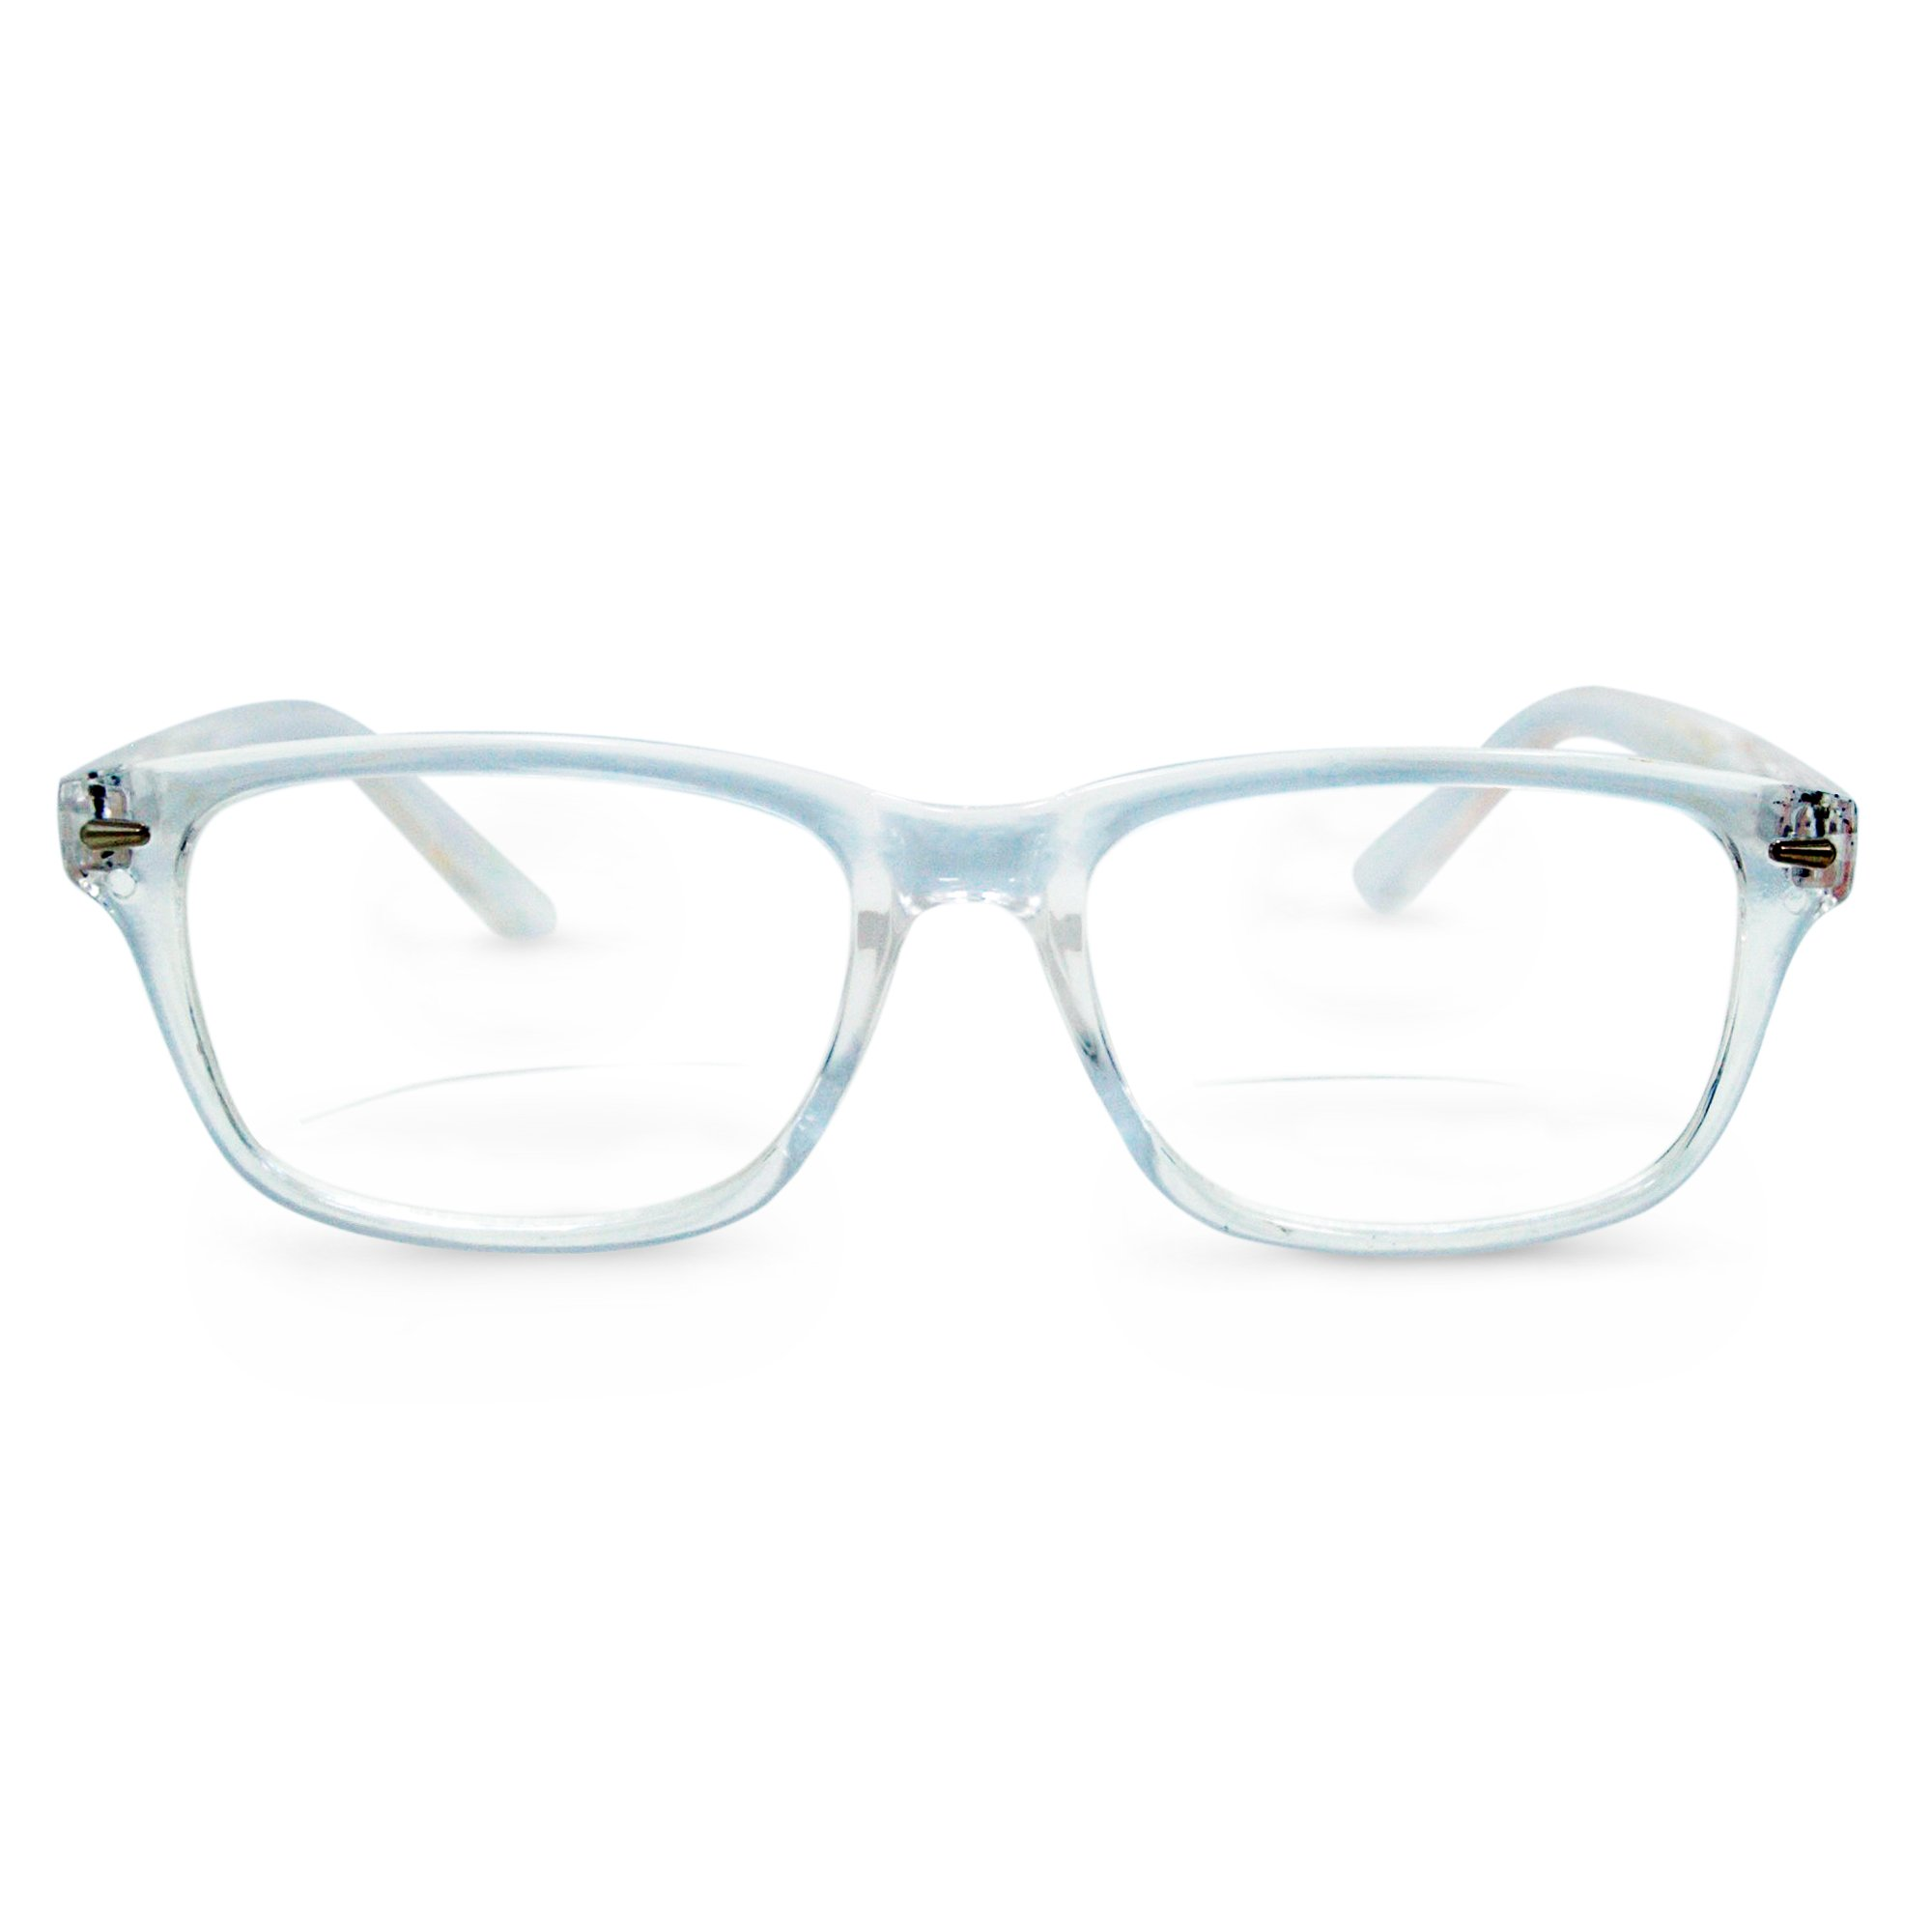 New York Bifocal Reading Glasses (Clear, 2.25)